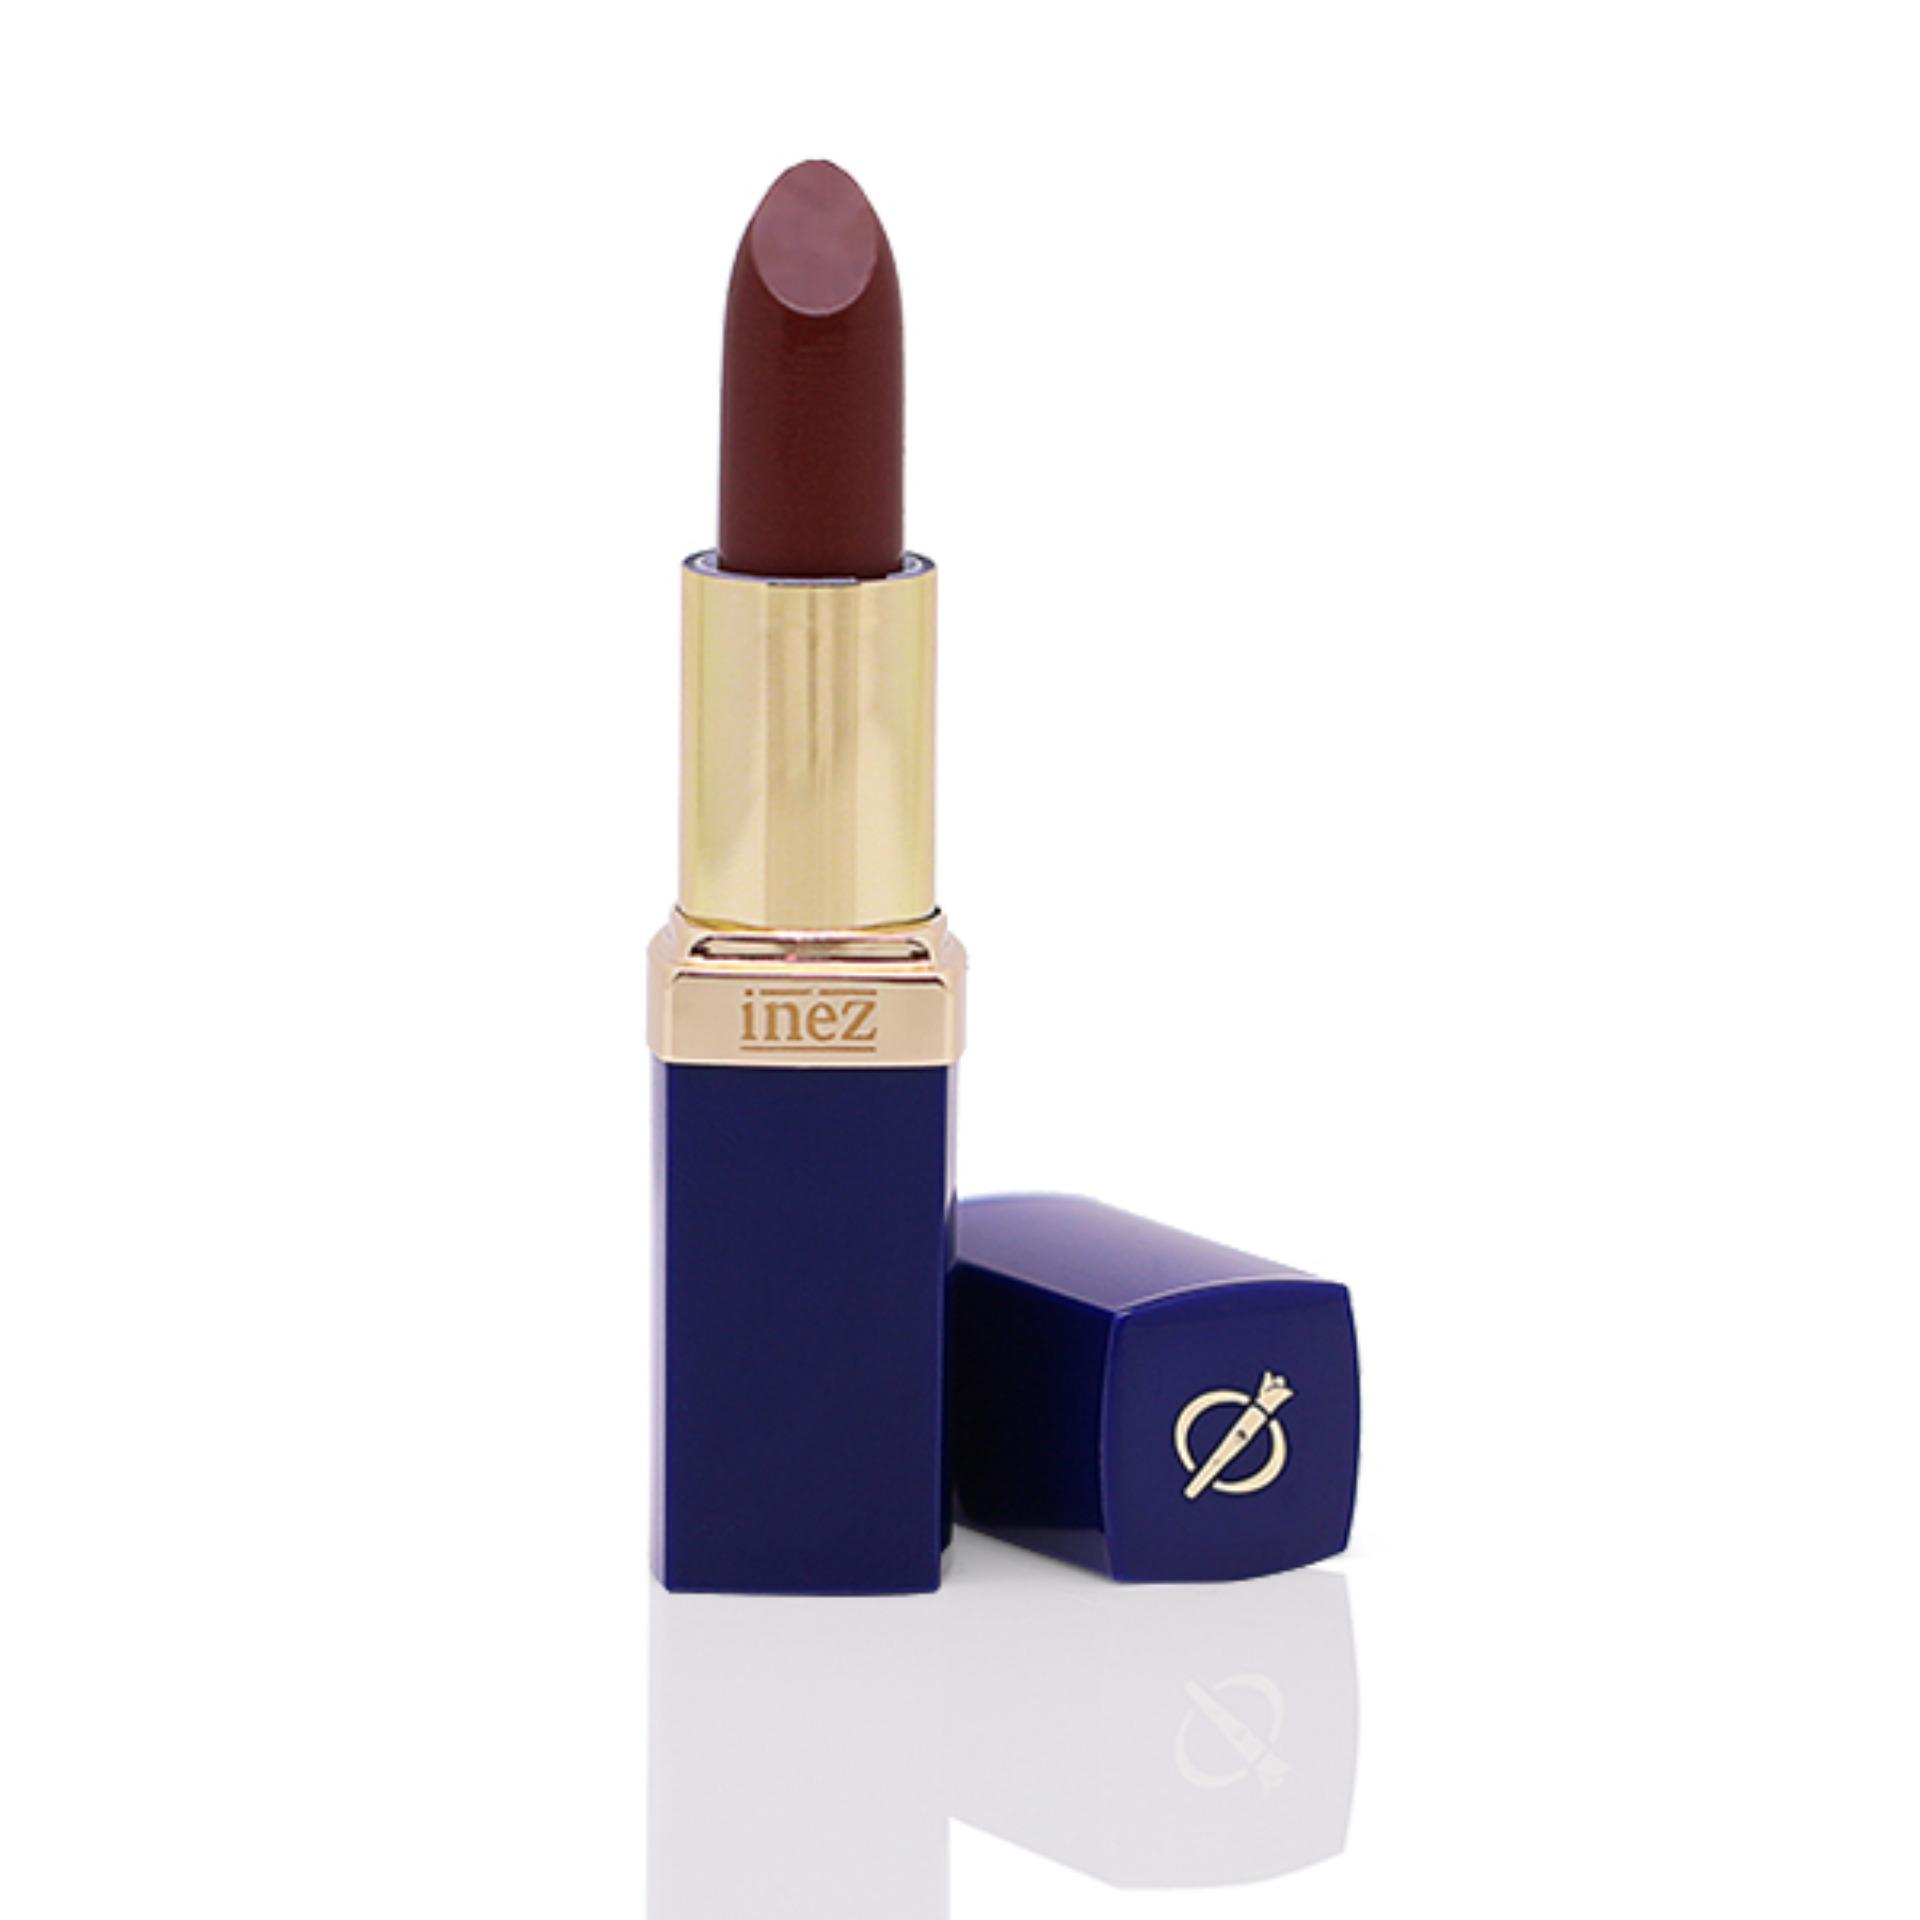 Inez Colour Contour Plus Lipstick -  Maroon